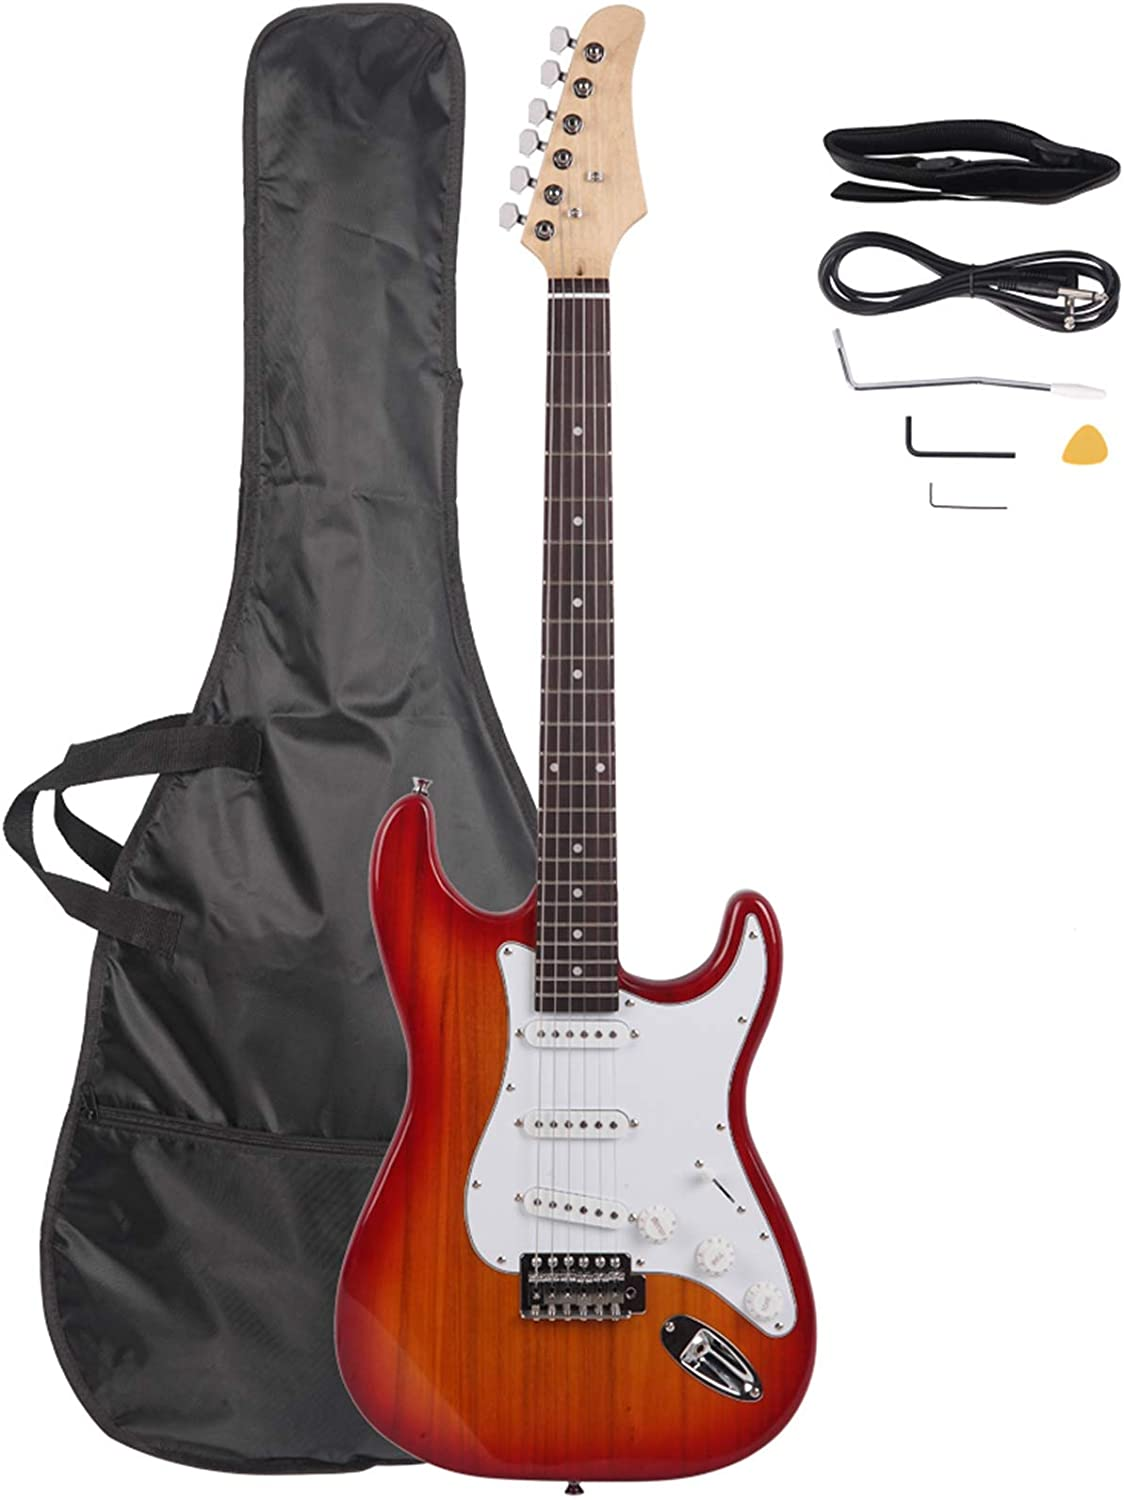 Rosewood Fingerboard quality assurance Electric Guitar Sunset Red G Max 56% OFF - Affordable